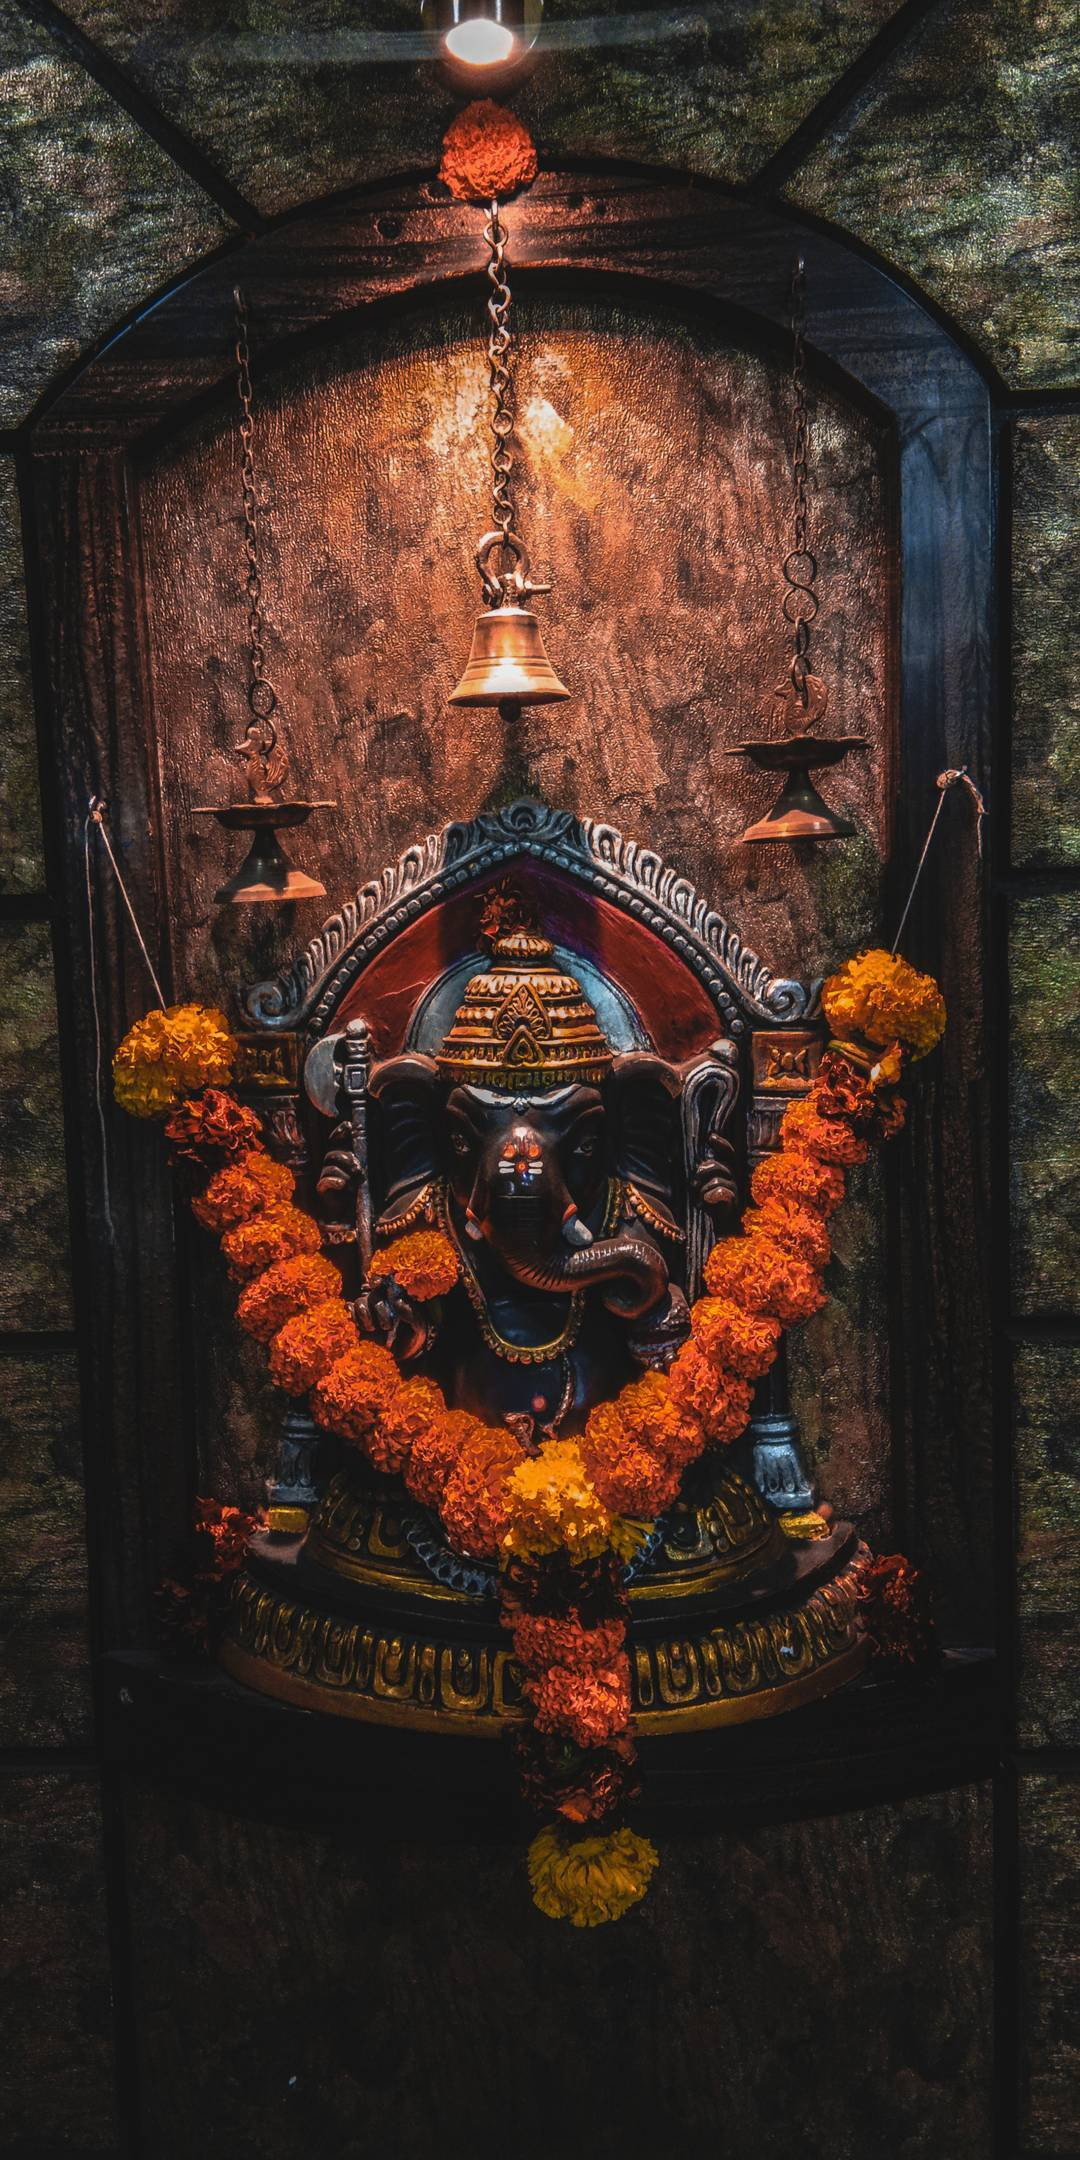 Lord Ganesha Statue in Temple